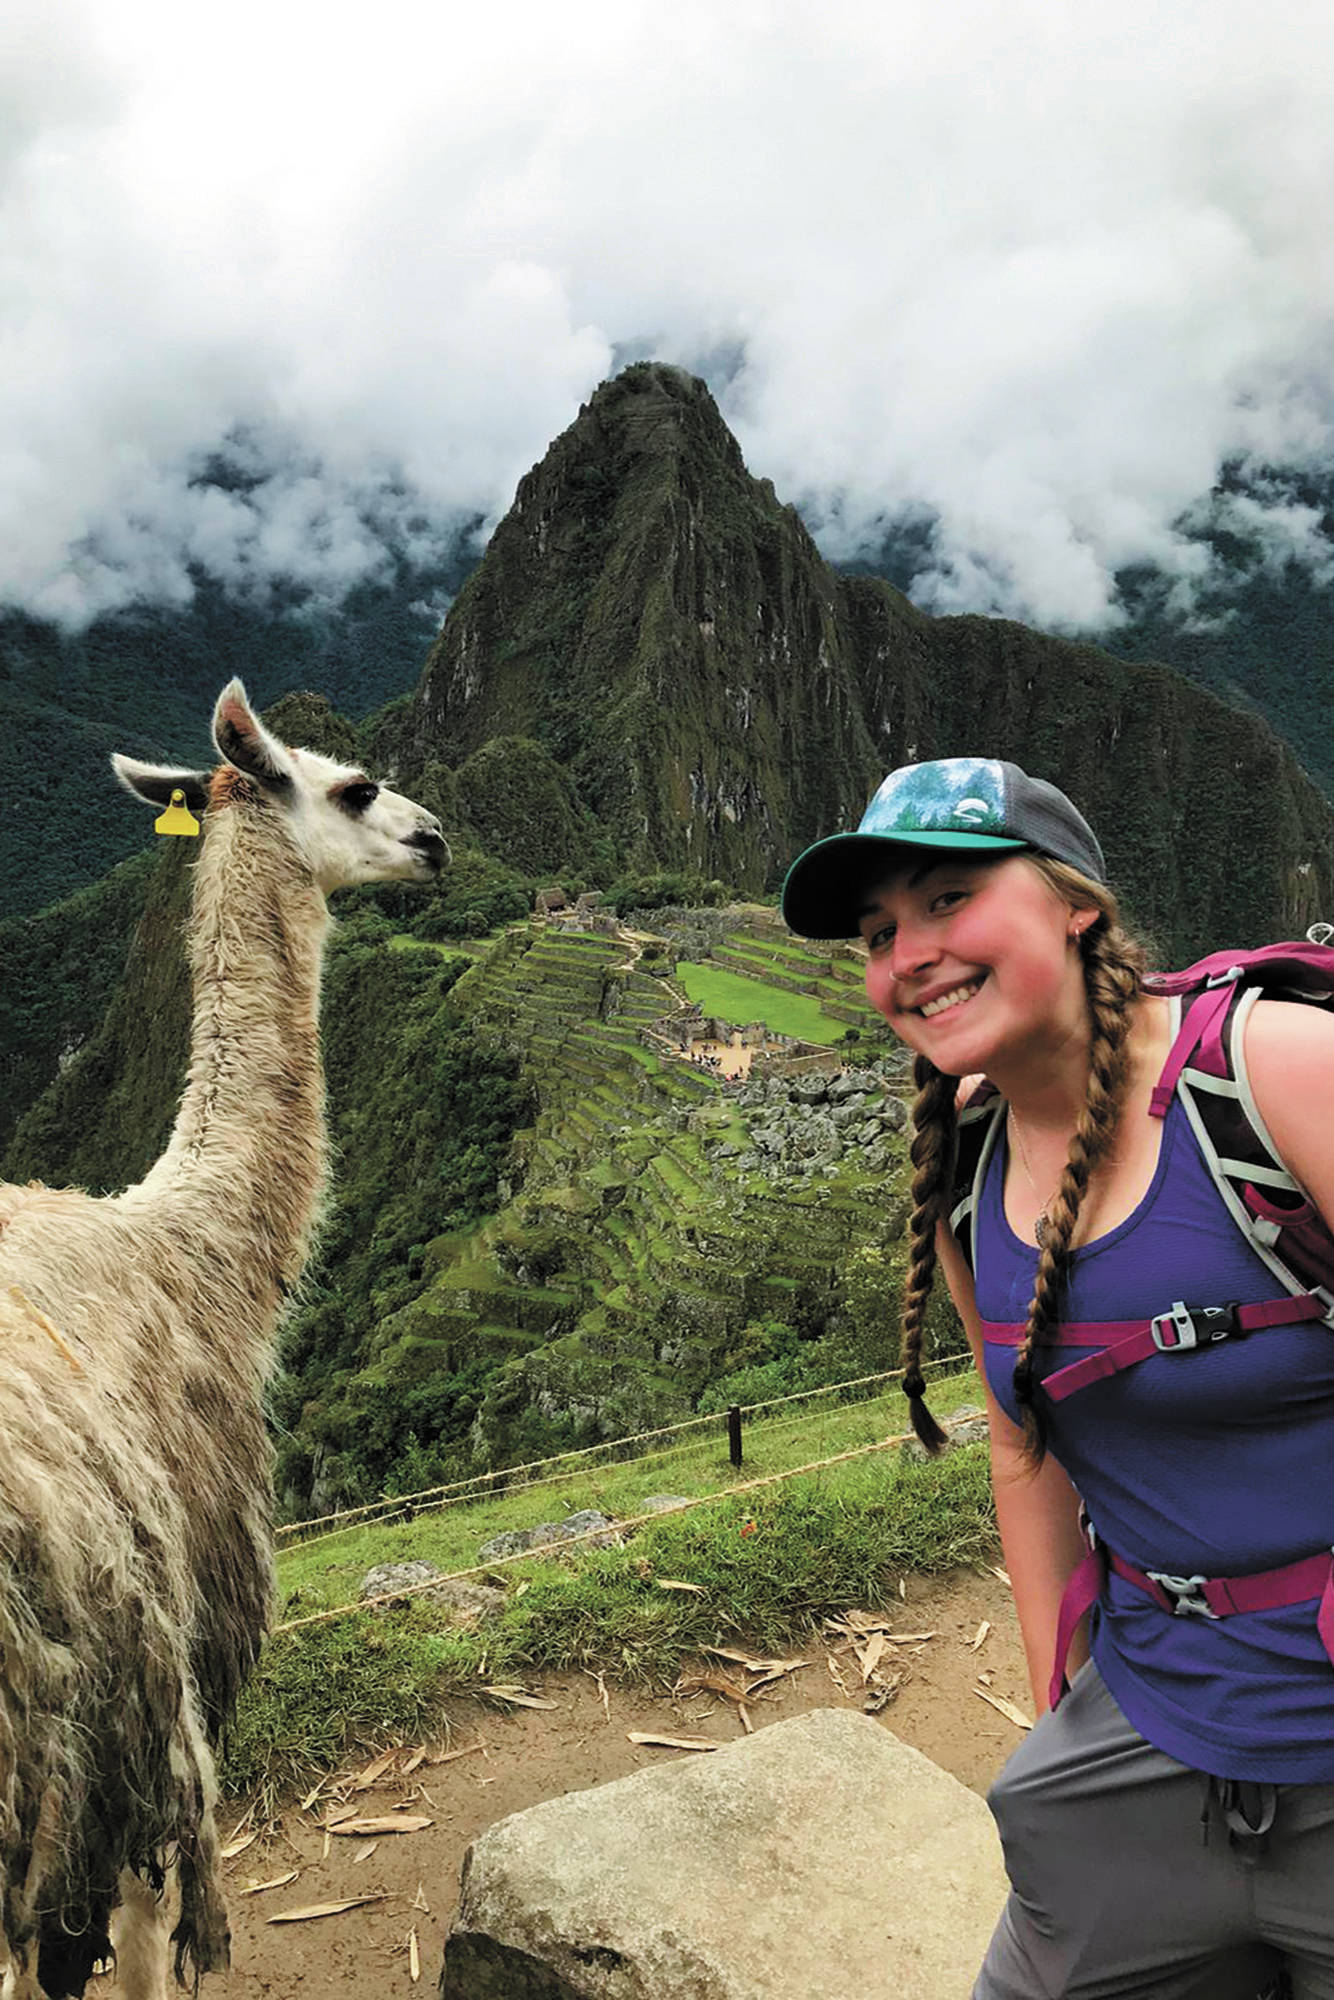 Brenna McCarron, a Homer High School graduate stuck in Peru after the country closed its borders to stem the spread of the novel coronavirus, enjoys the sights at Machu Picchu, Peru. She is one of about 19 Alaskans stranded in the country. (Photo courtesy Brenna McCarron)